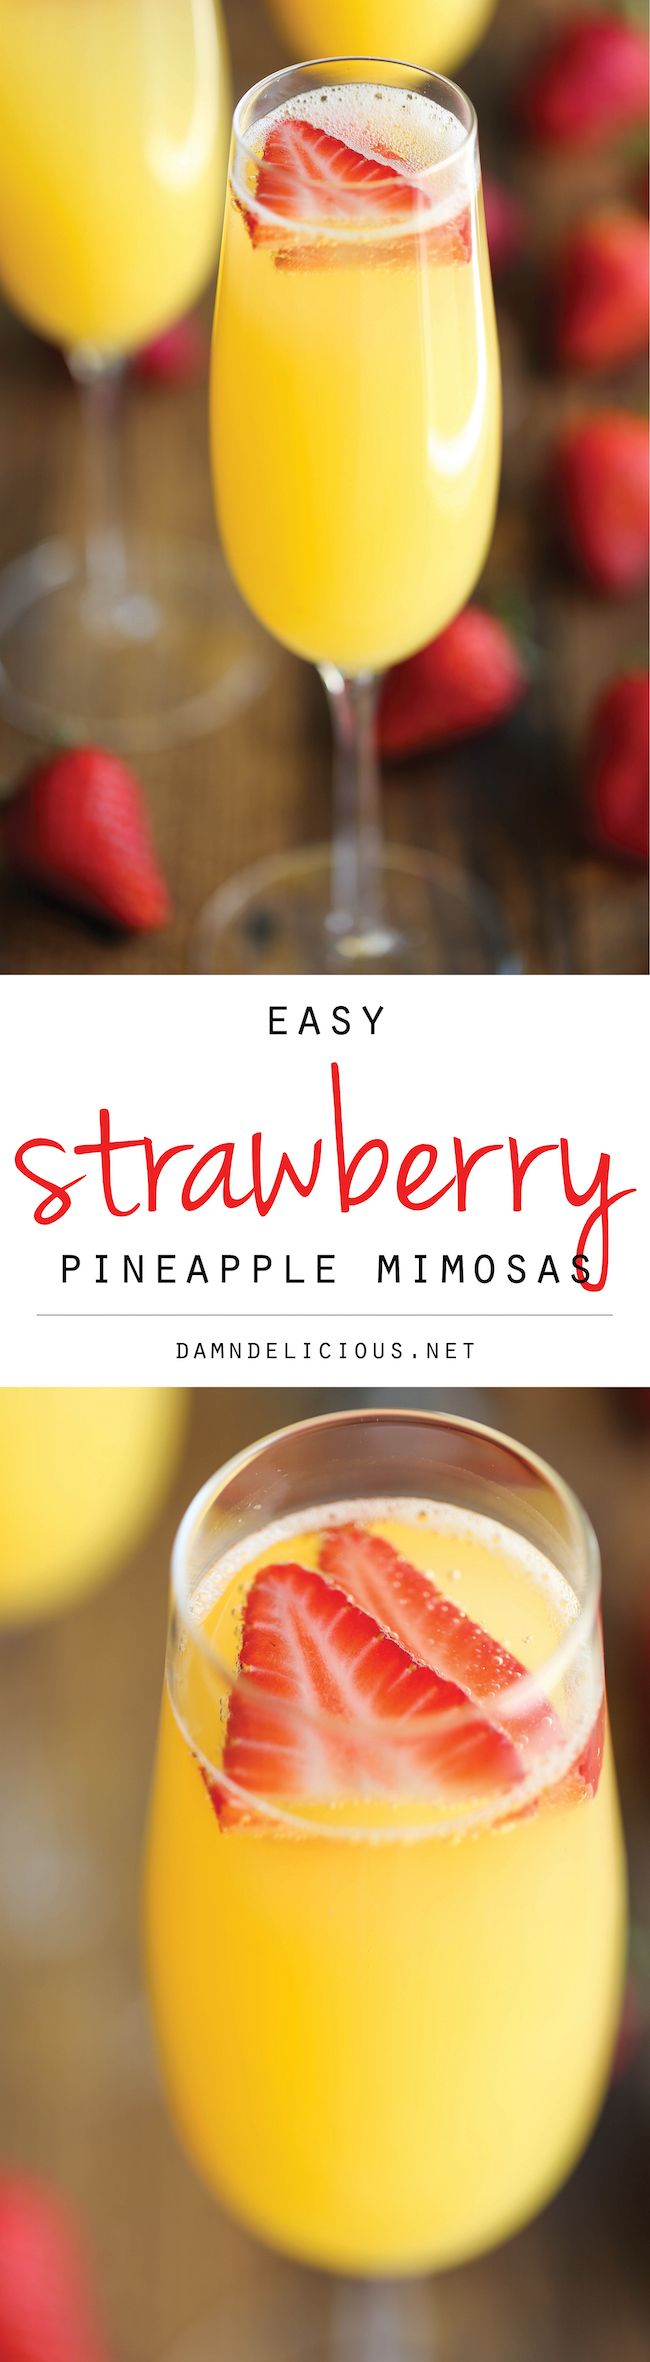 Strawberry, Pineapple Mimosas. The easiest, quickest, and best 4-ingredient mimosa ever. And all you need is just 5 min to whip this up!